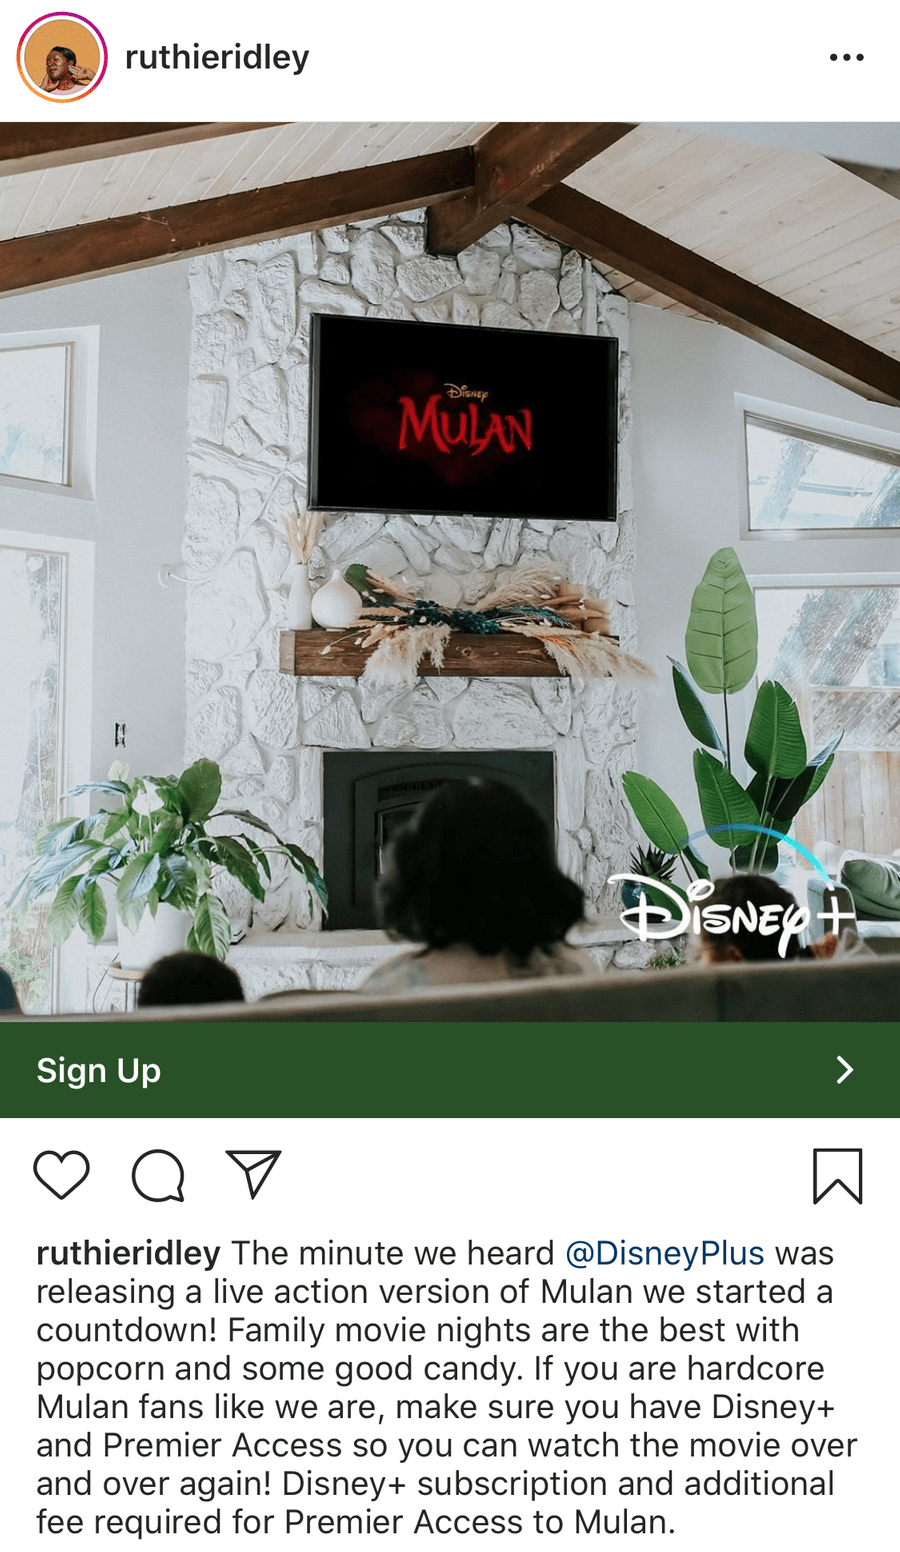 Ruthie Ridley's Mulan post with Disney